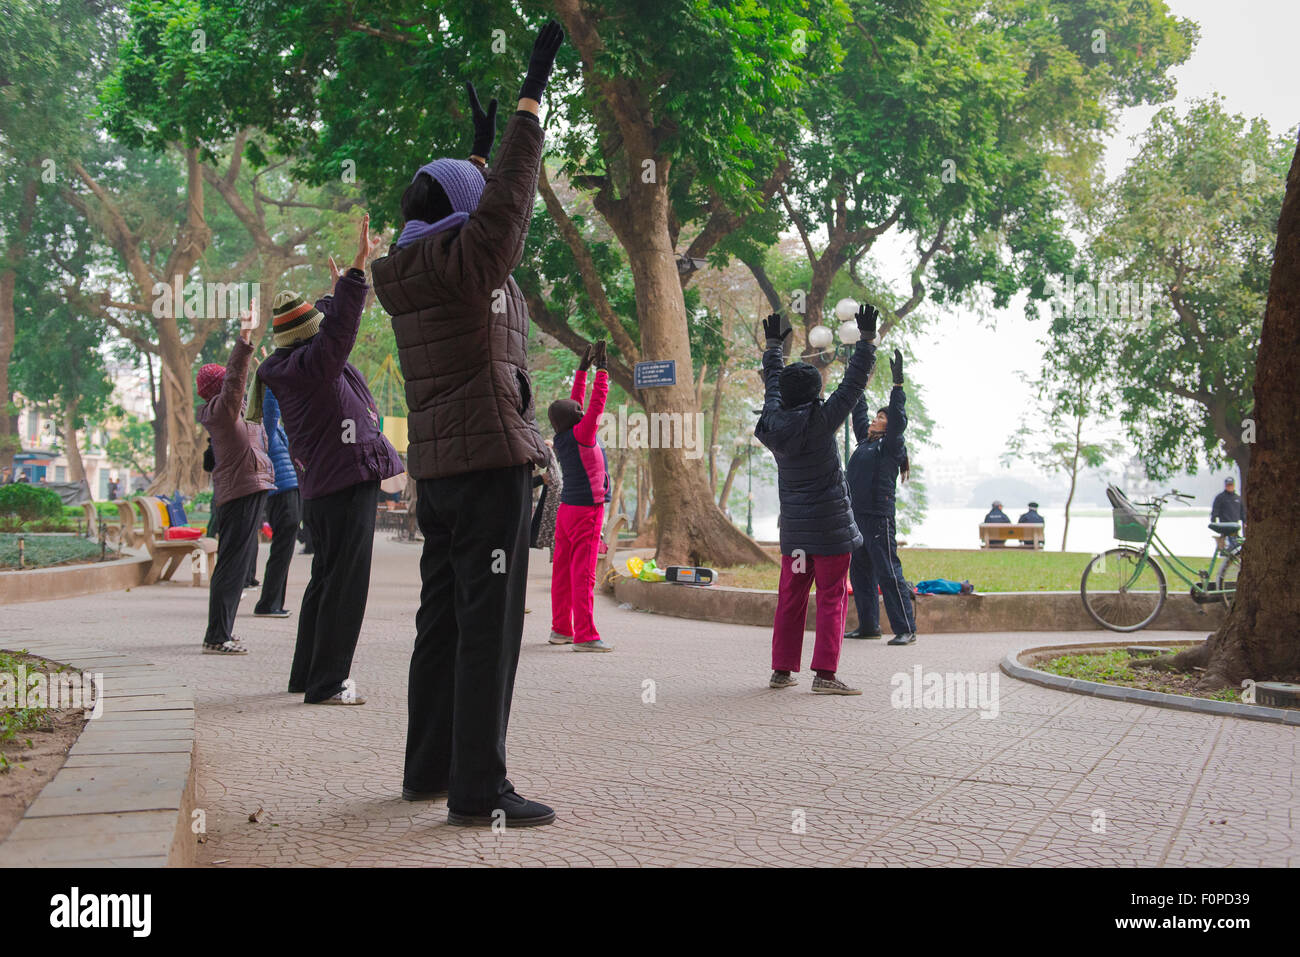 Tai chi park asia, middle aged women participate in an early morning tai chi session in Hanoi, Vietnam. - Stock Image